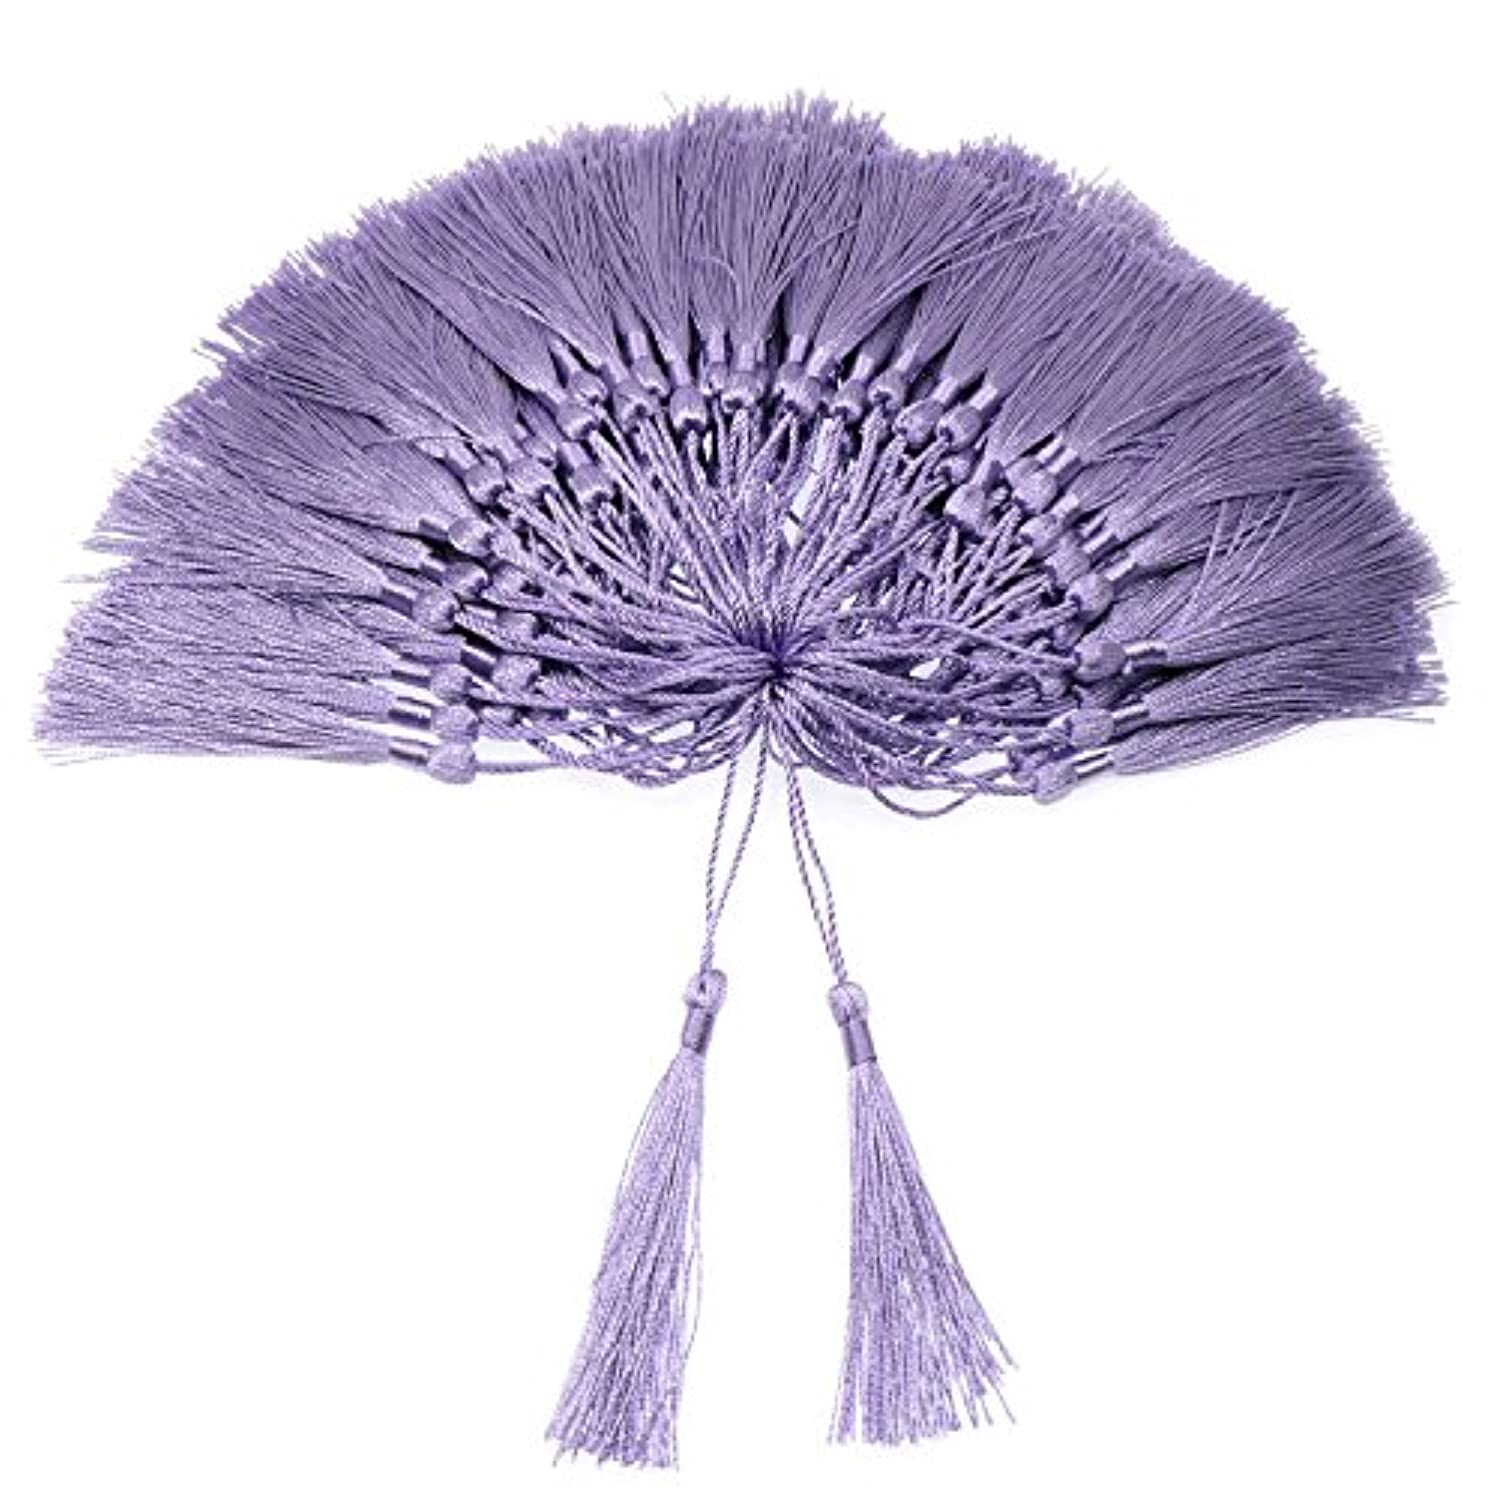 VAPKER 100 Pieces Purple Tassels 13cm/5-Inch Silky Handmade Soft Tassels Floss Bookmark Tassels with 2-inch Cord Loop for Jewelry Making, DIY Projects, Bookmarks